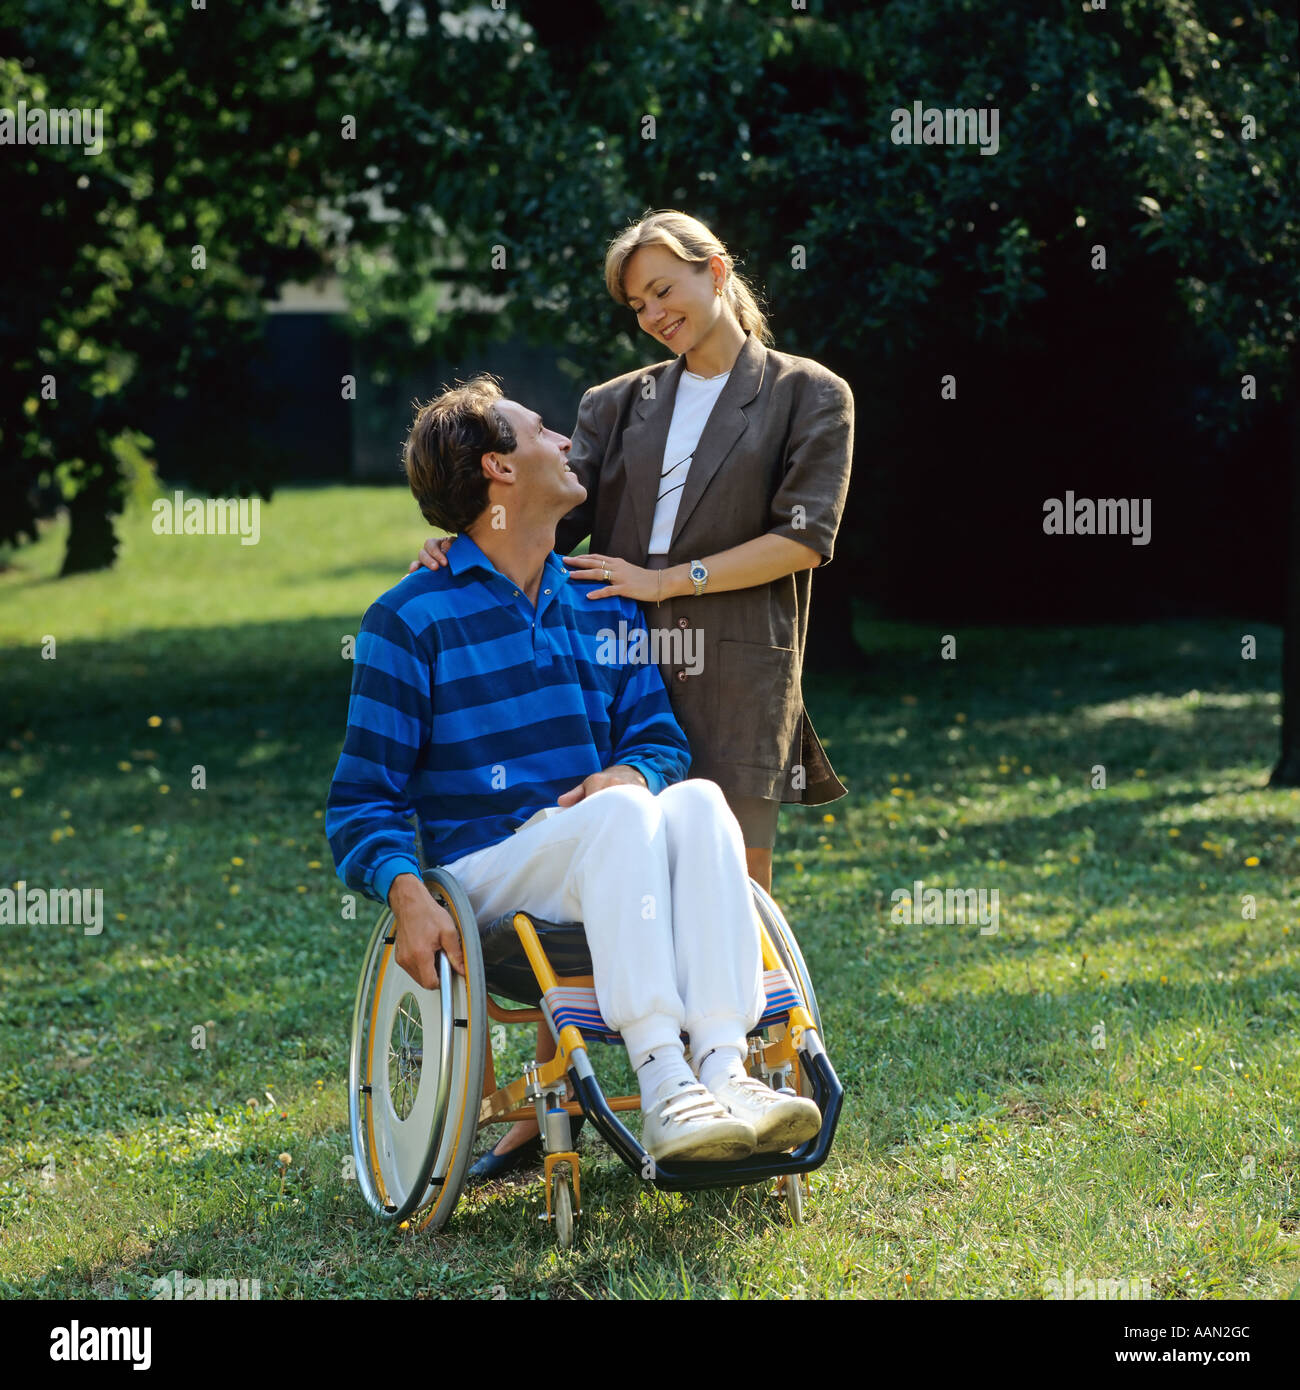 Disabled man in wheelchair and woman in garden - Stock Image